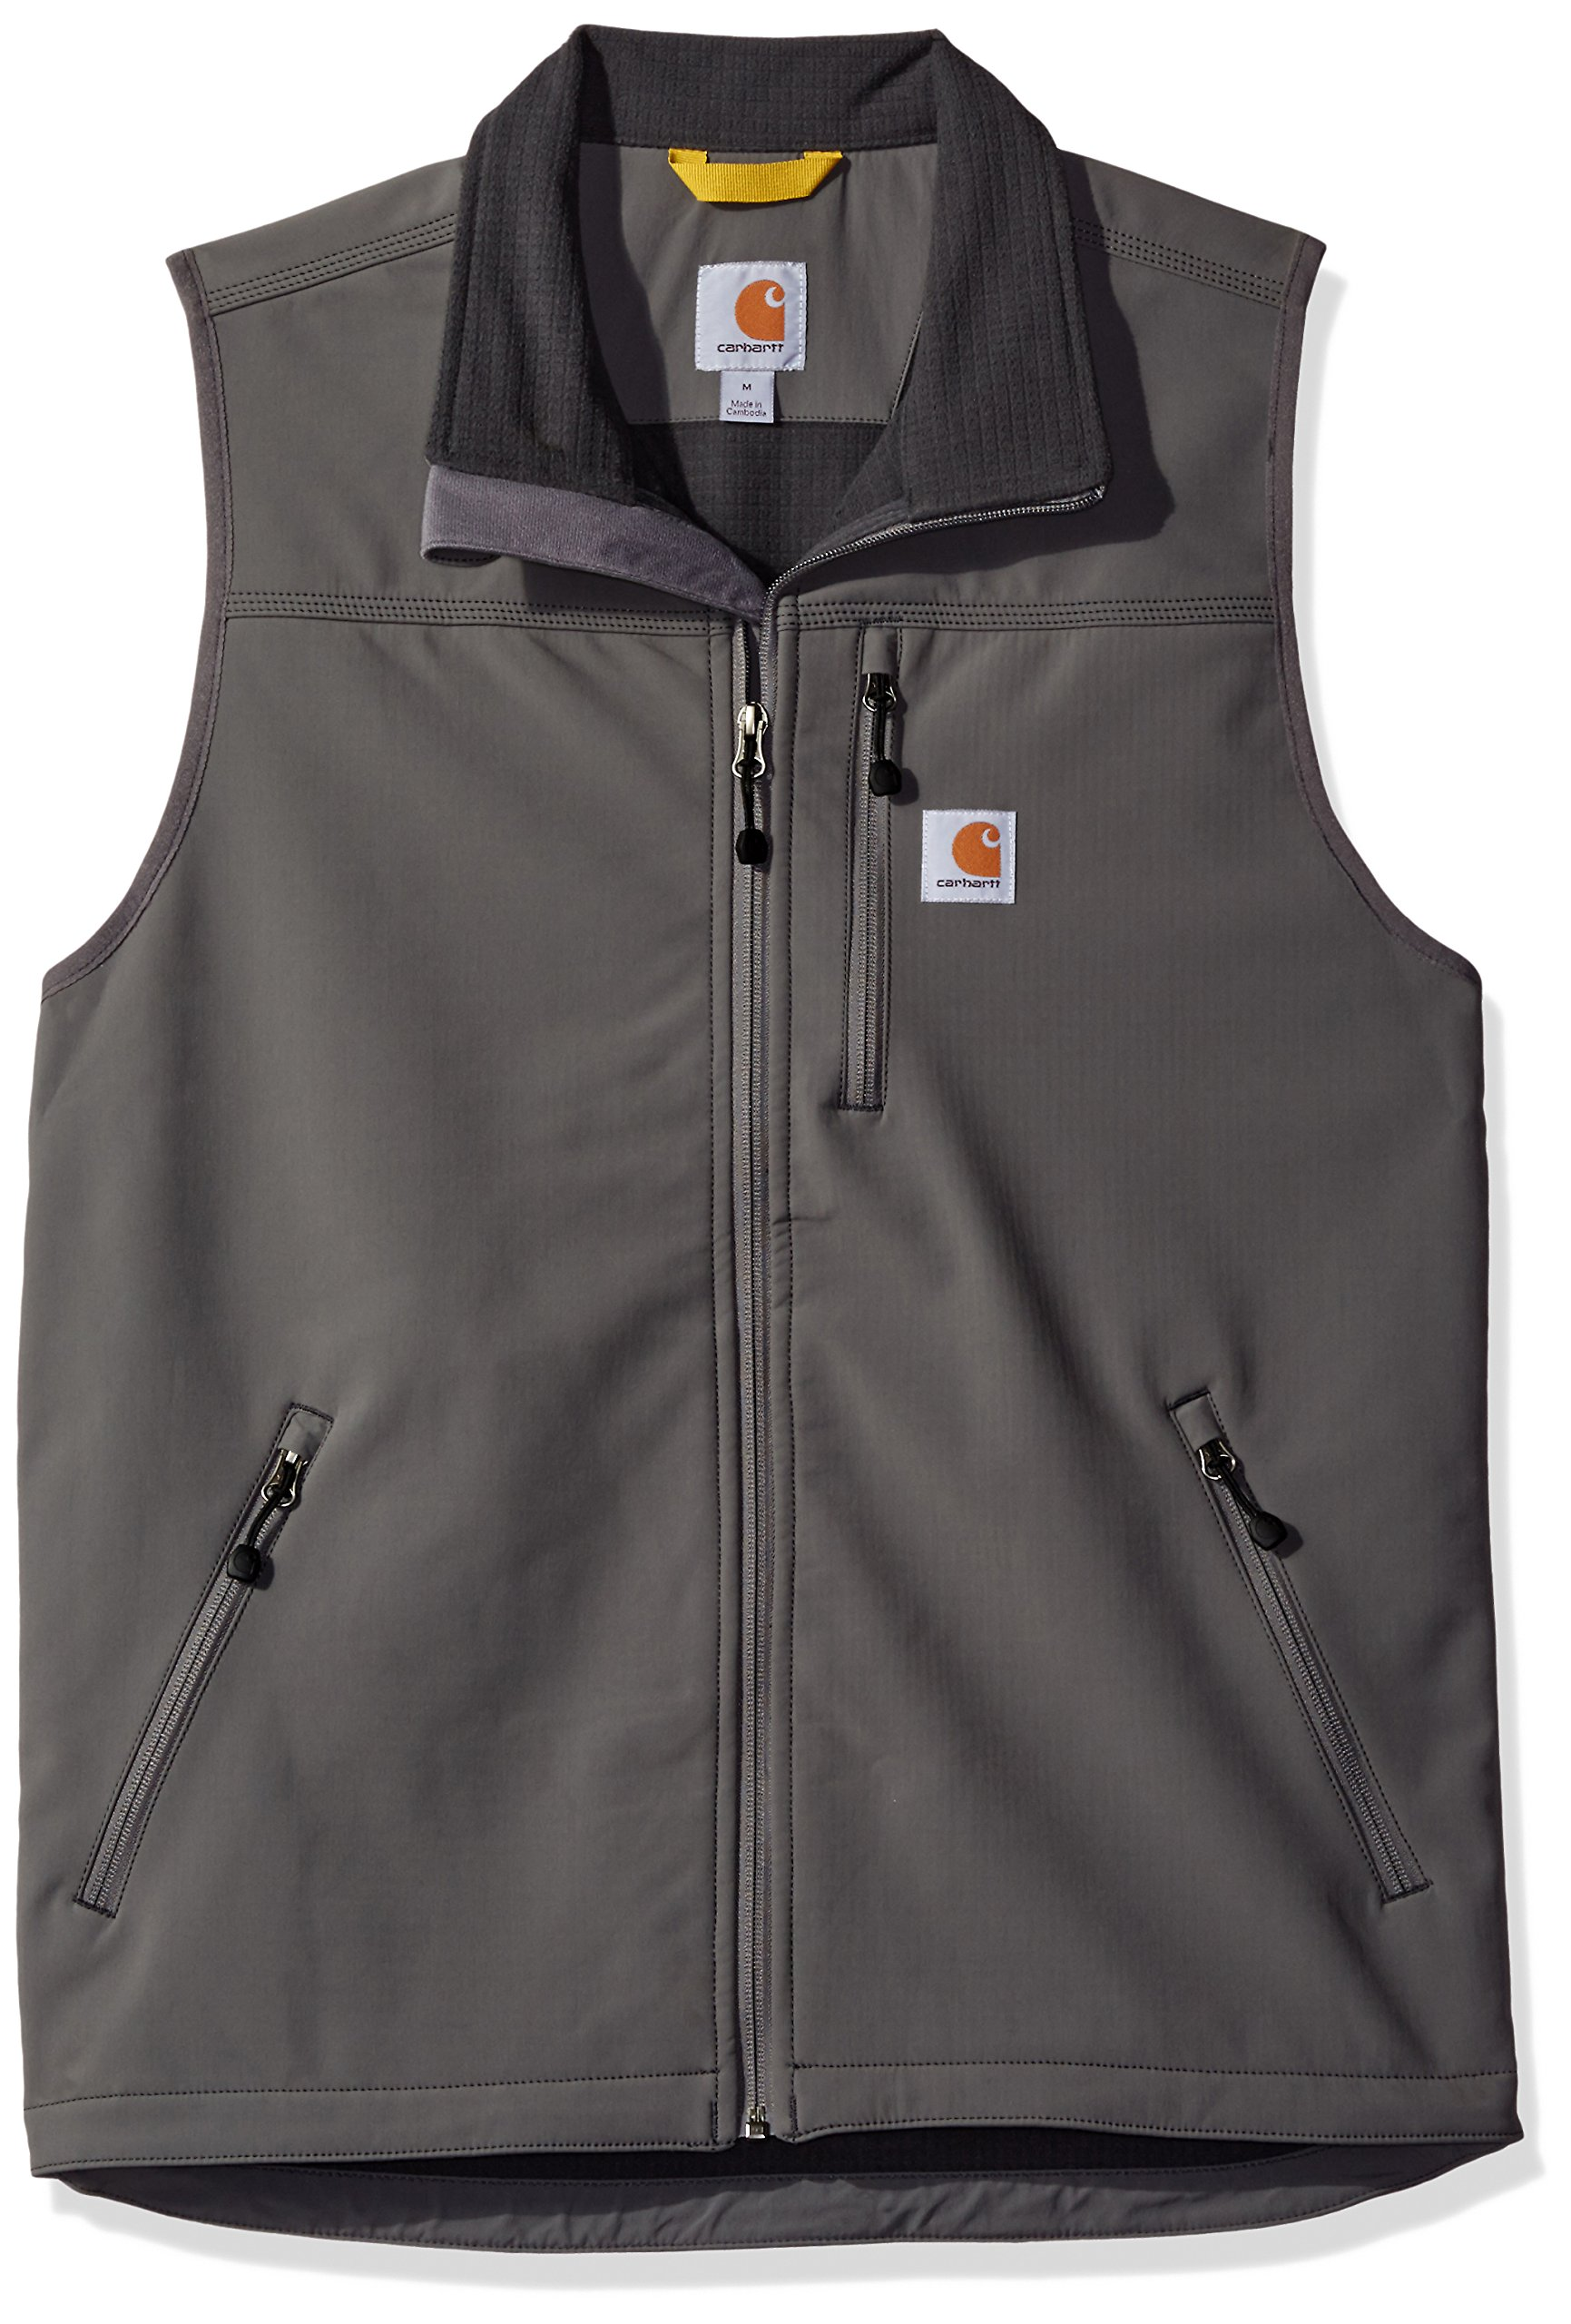 Carhartt Men's Denwood Vest, Charcoal, 2X-Large by Carhartt